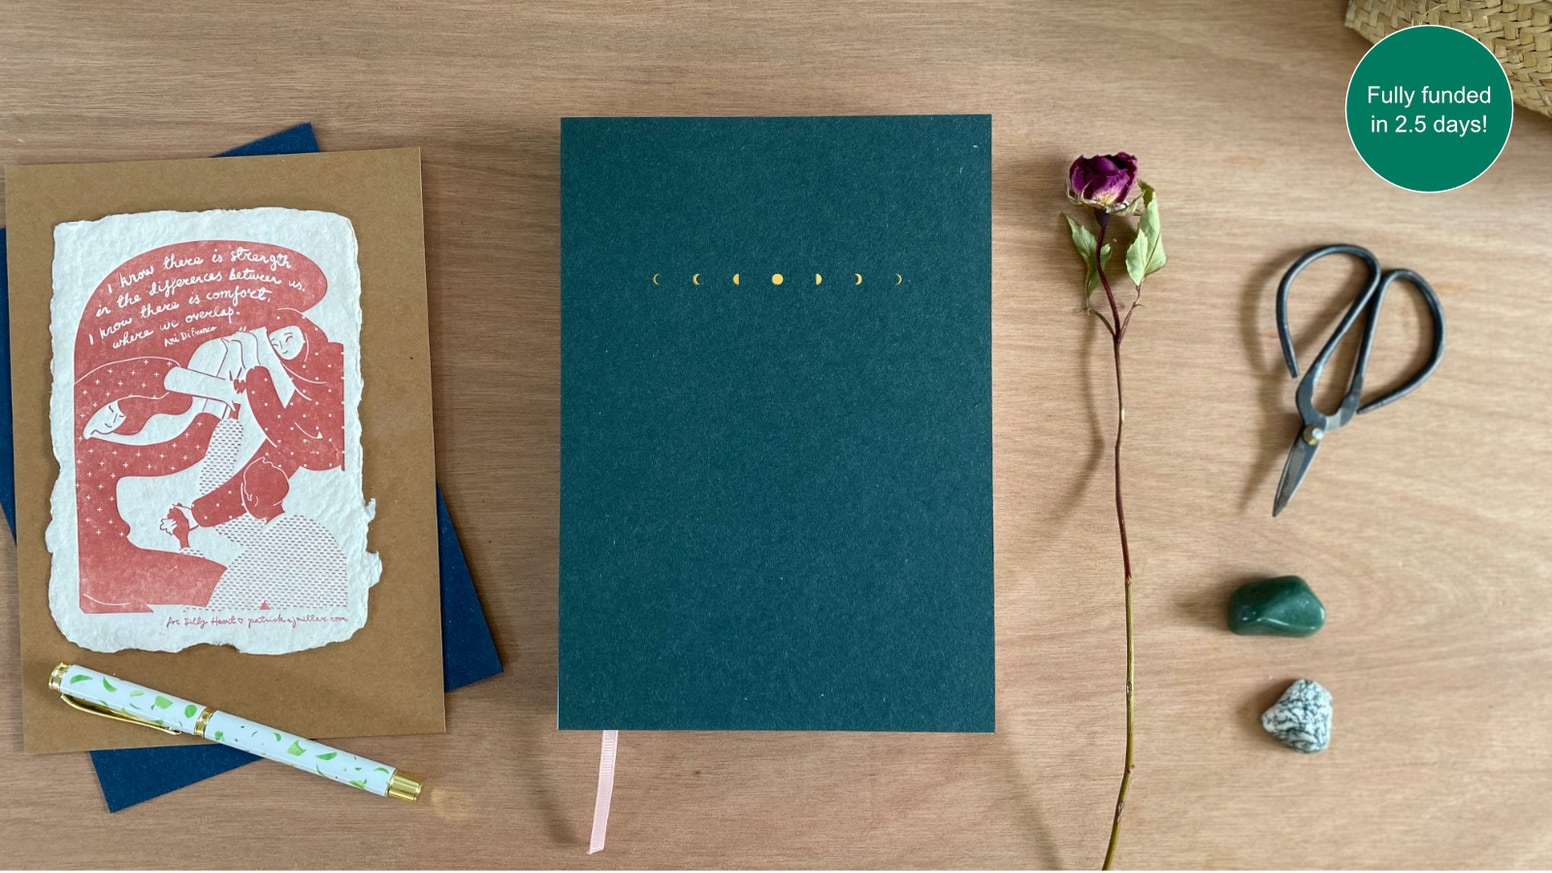 A three month productivity planner and wellness journal for people working in flow with natural cycles - menstrual, lunar, seasonal.